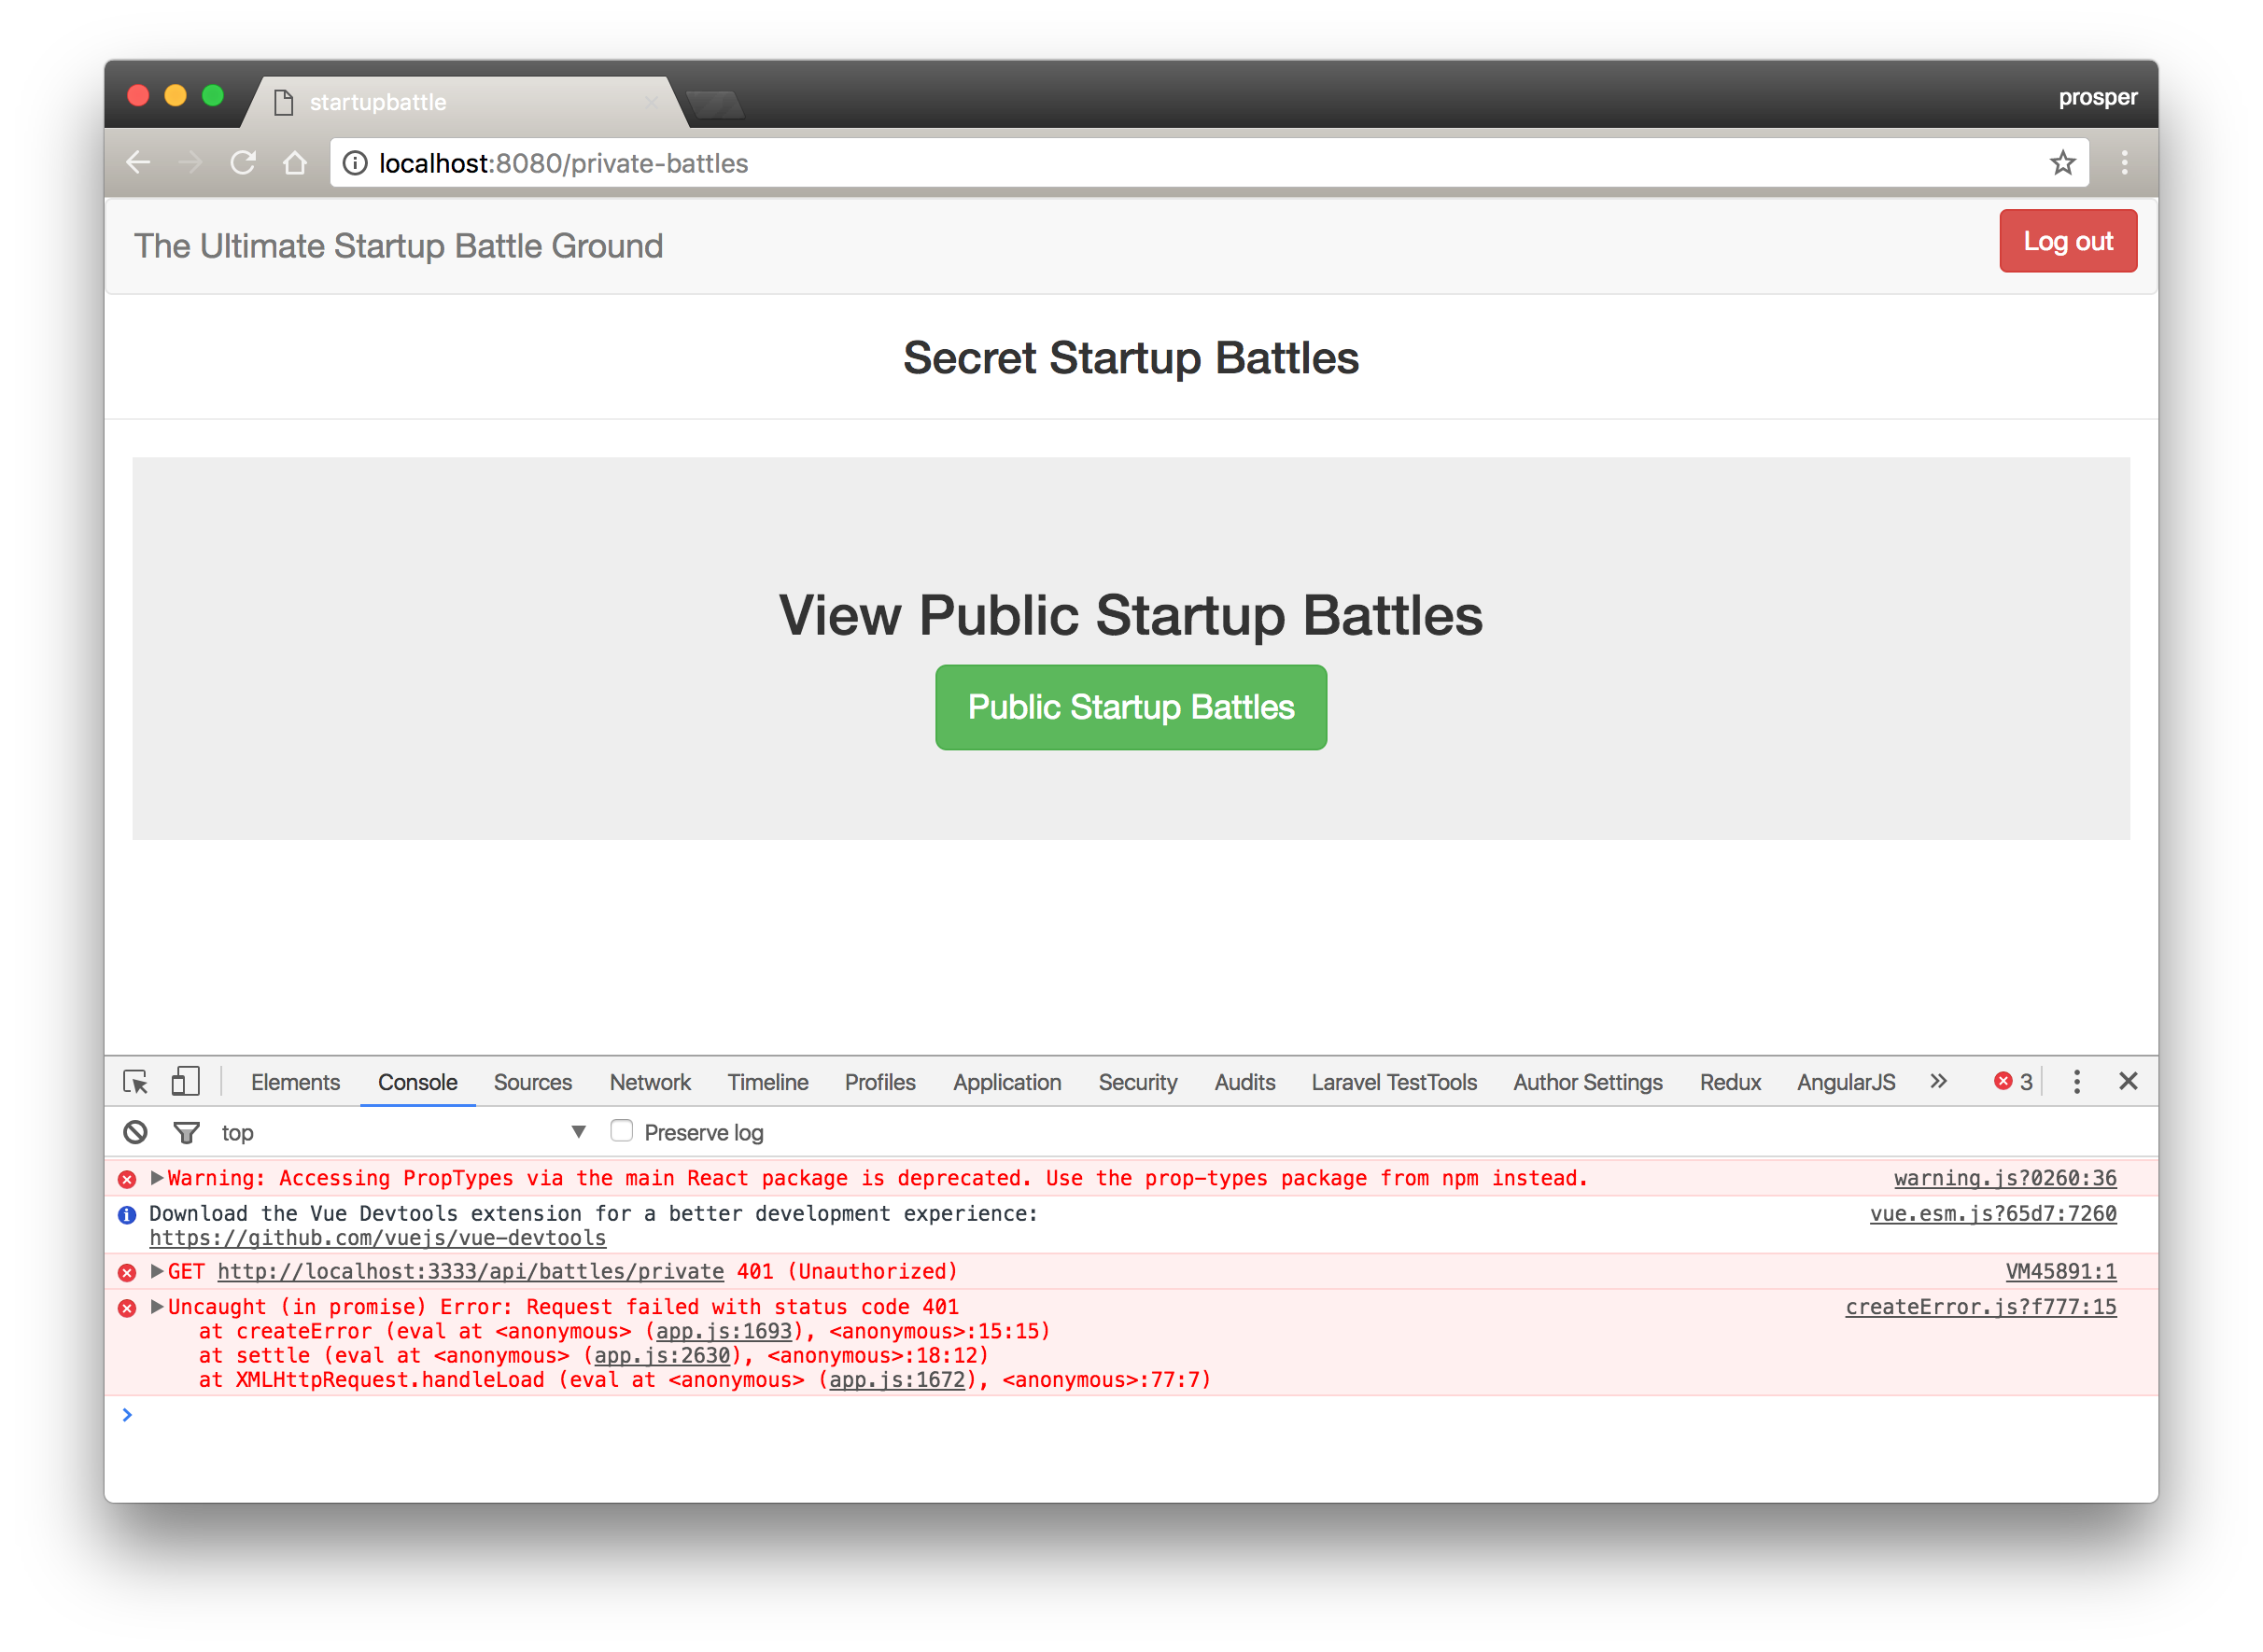 Logged In and Unauthorized to see the Private Startup Battle